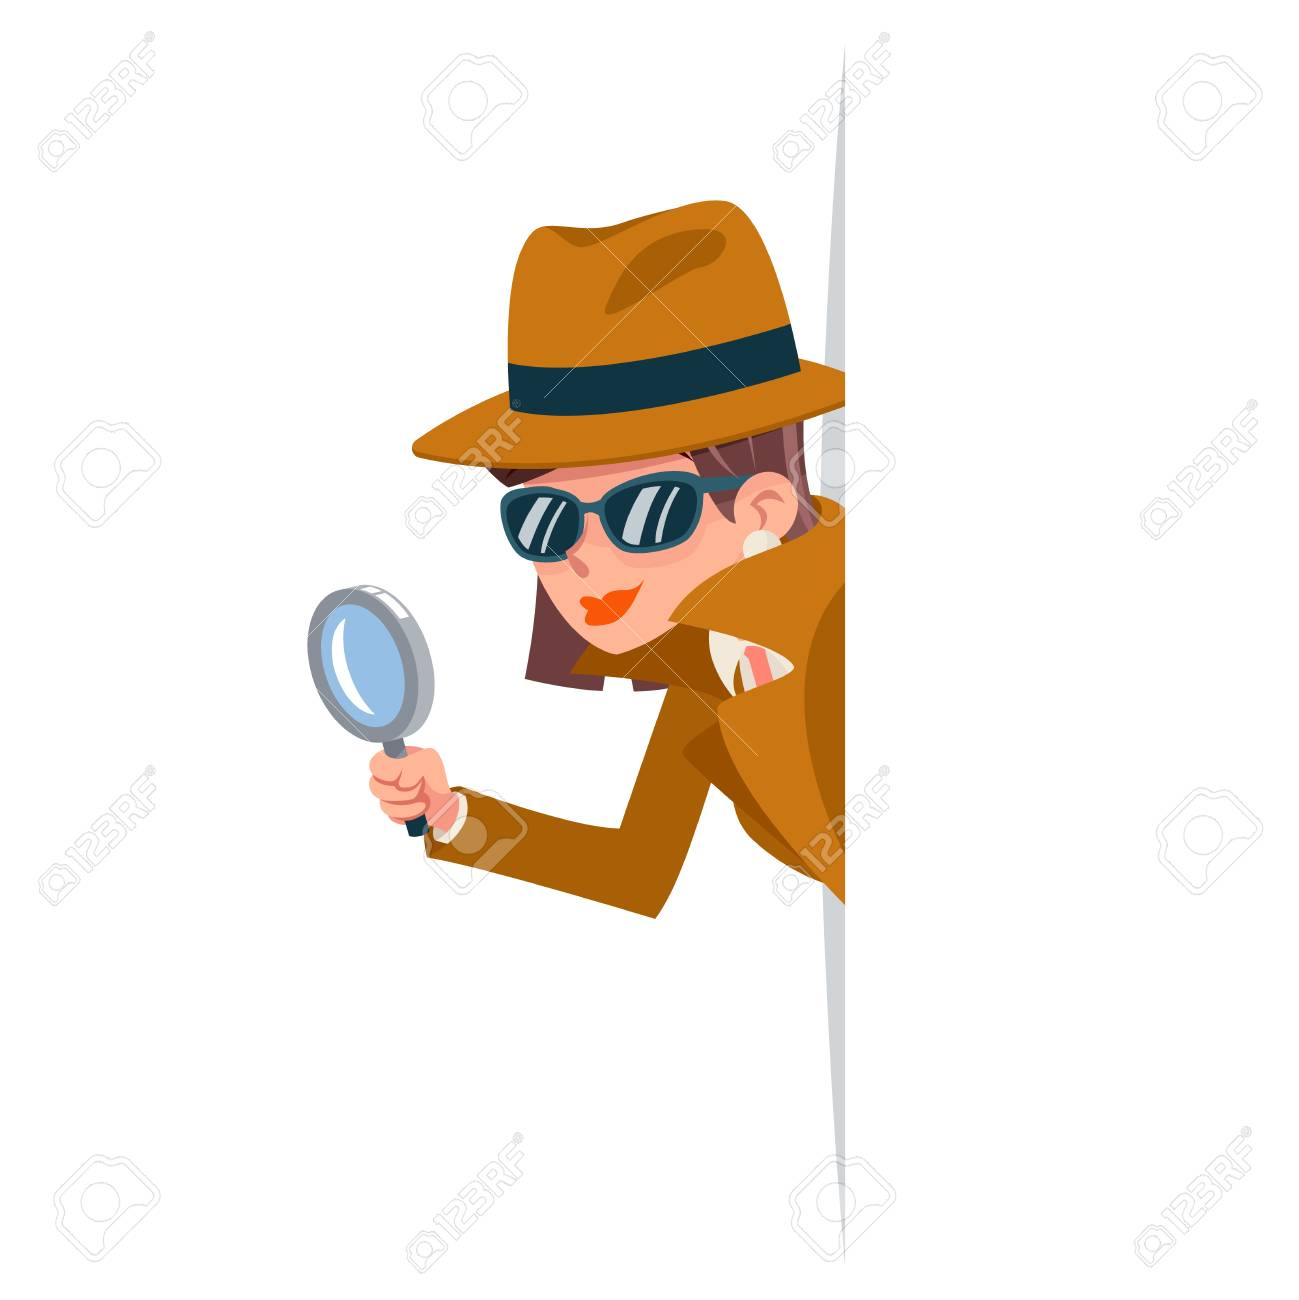 Cute woman snoop detective magnifying glass tec peeking out corner search help noir female cartoon character design isolated vector illustration - 118628838